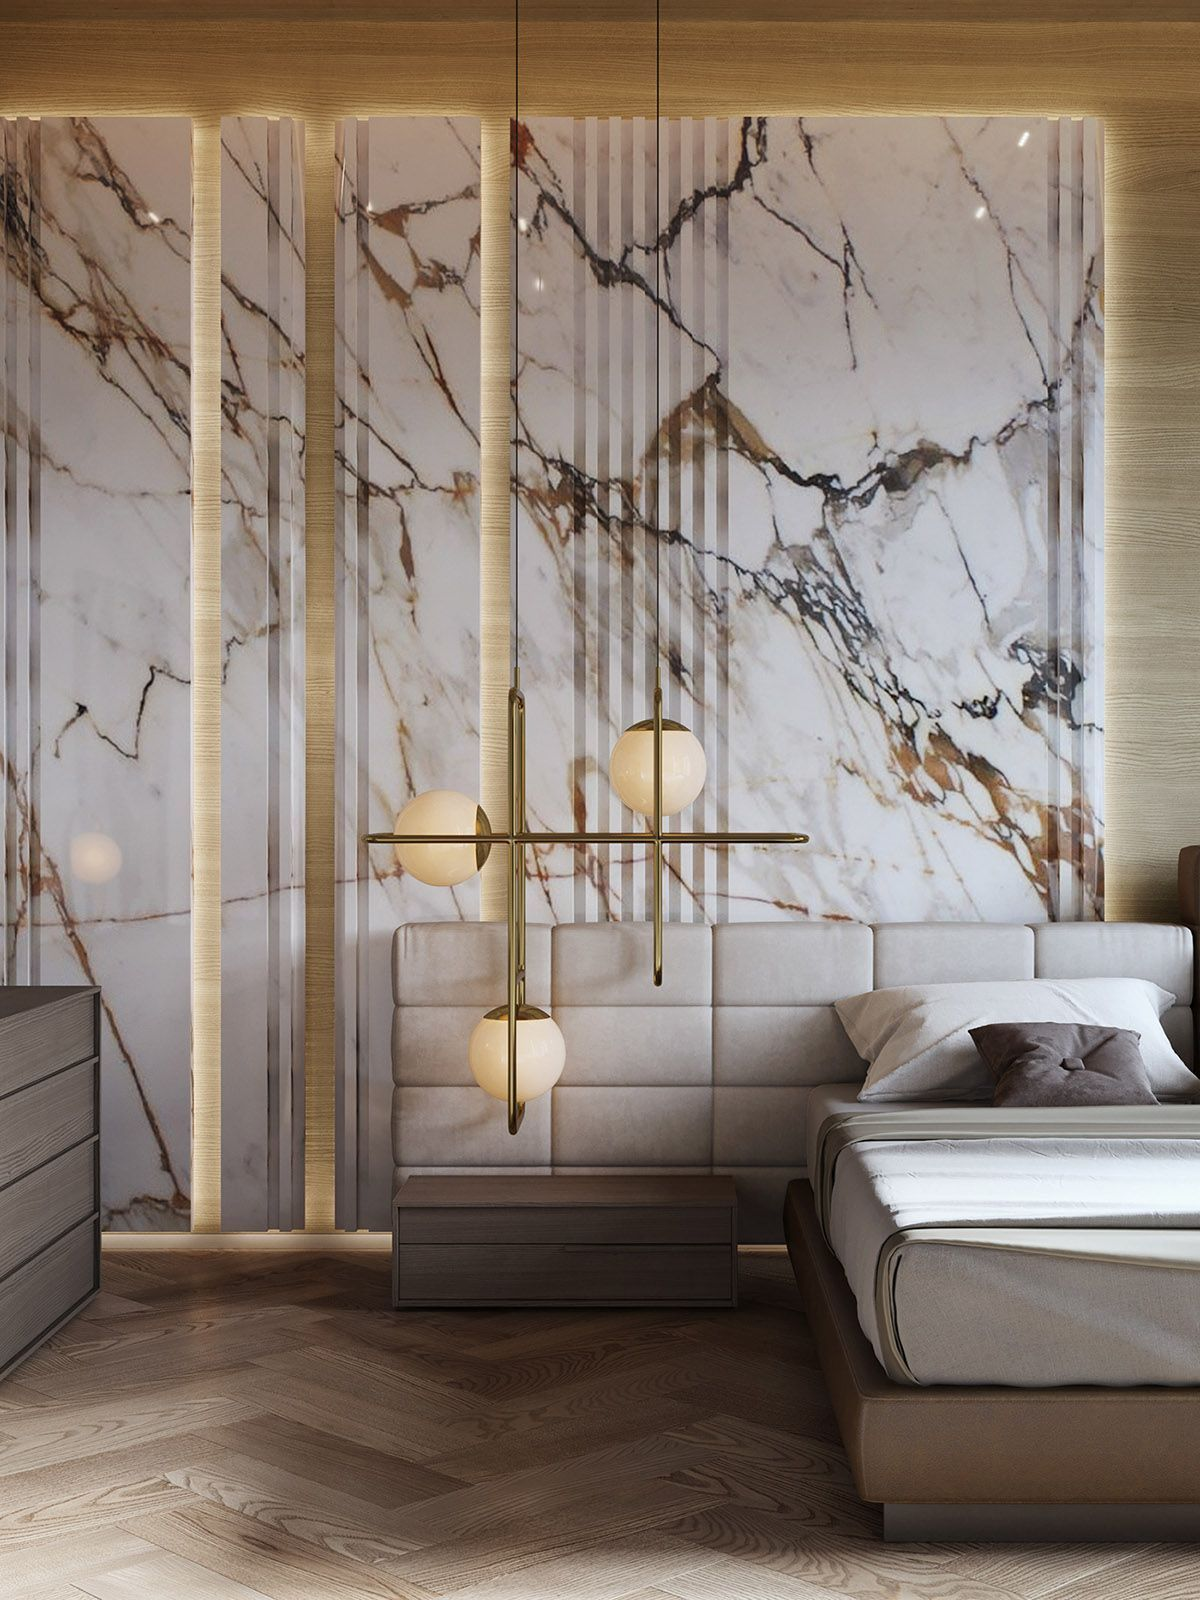 Interior Design Firm On Bedroom Designs: Tips For Getting The Most Out Of Home Improvement